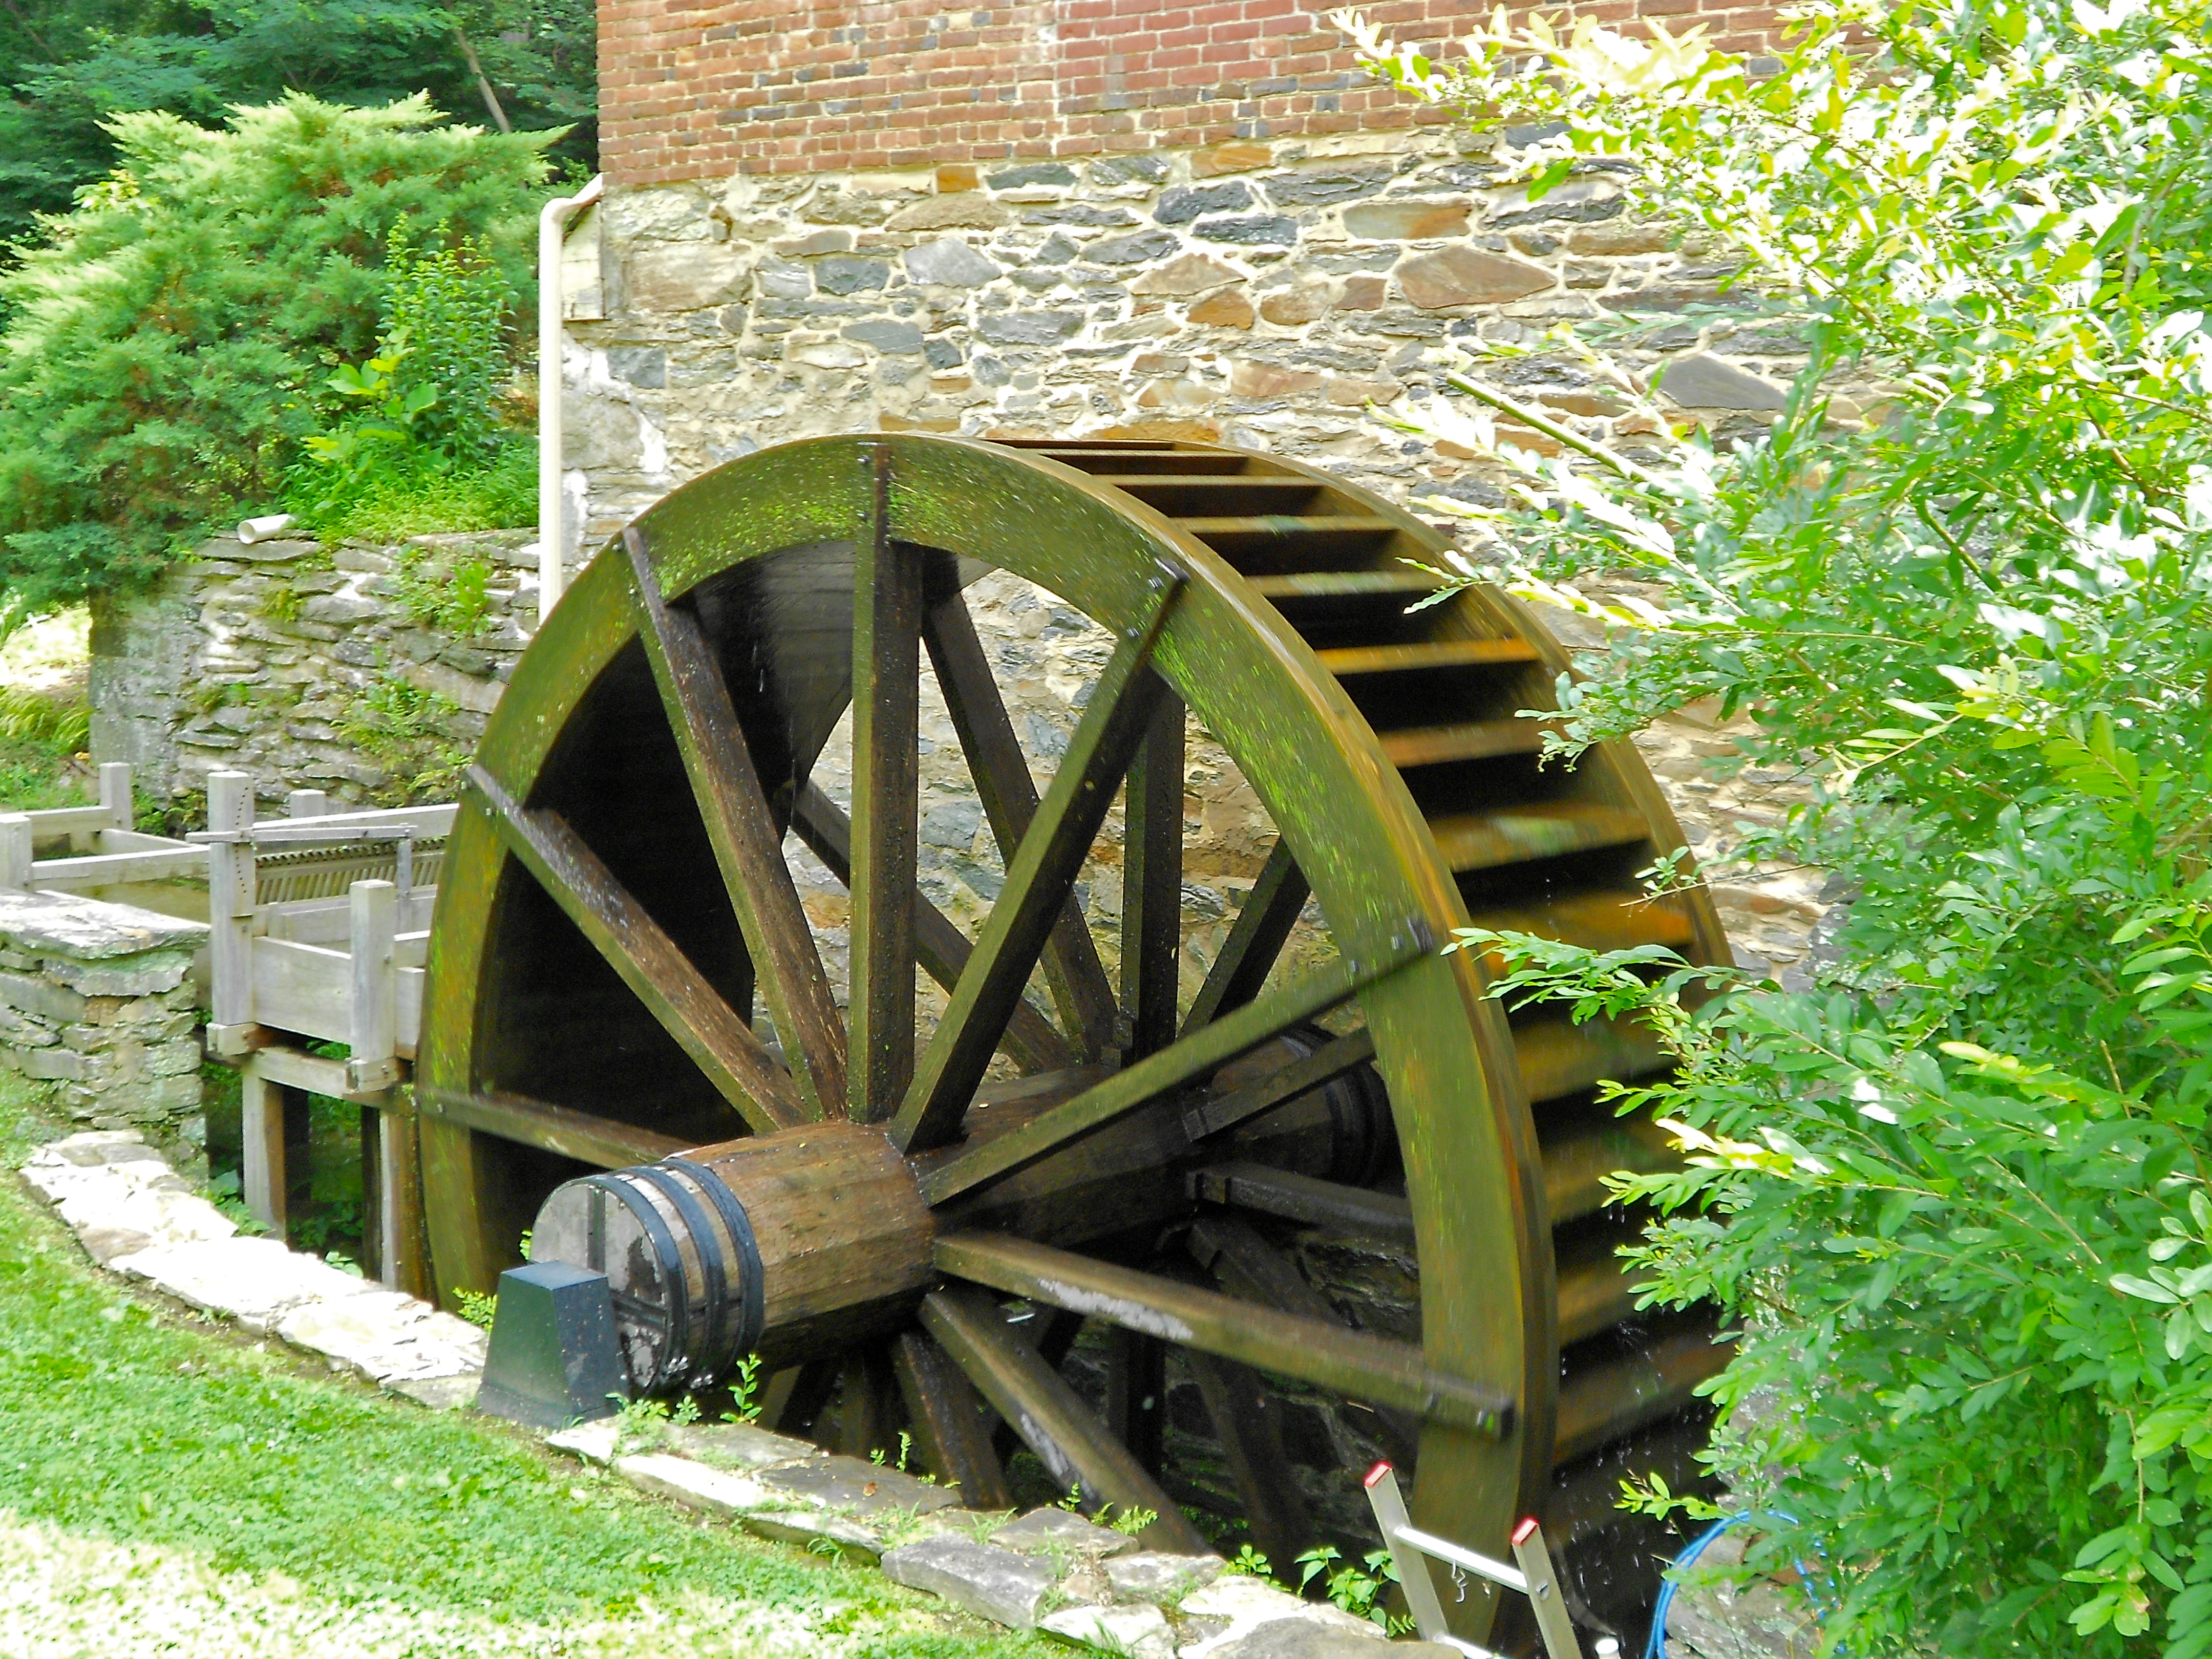 Water Wheel Mill Pictures File:kirk Mills Water Wheel